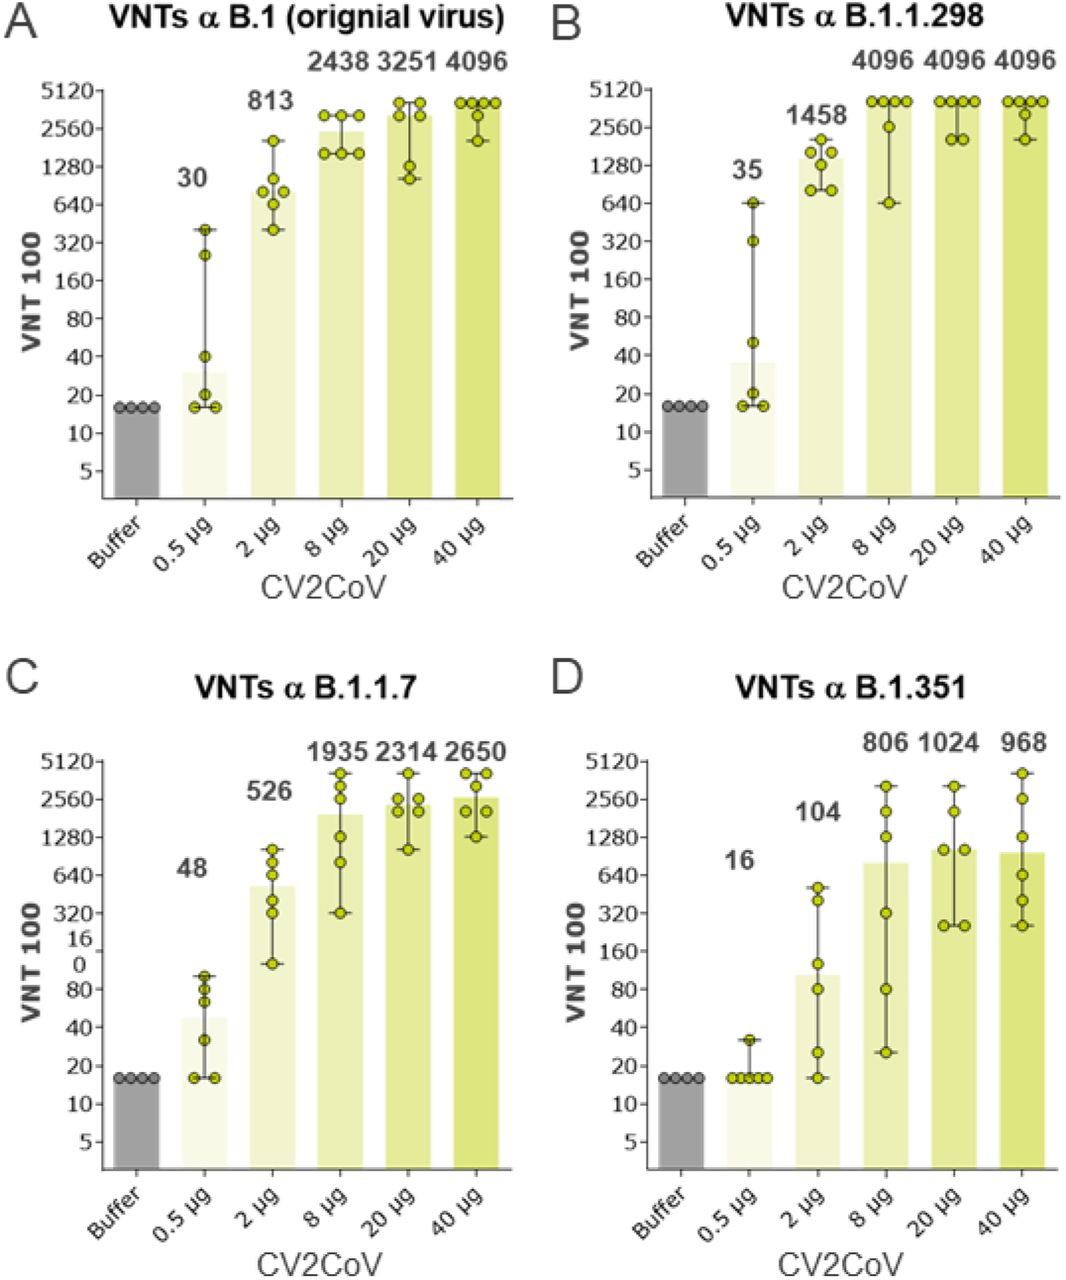 CV2CoV induces high titres of cross neutralising antibodies (VNT) against SARS-CoV-2 variants in rats. Female and male Wistar rats (n=6/group) were vaccinated IM with five different doses ranging from 0.5 μg – 40 μg of CV2CoV on day 0 and day 21. Animals (n=4) vaccinated with NaCl (Buffer) served as negative controls. SARS-CoV-2 100% neutralization titres (VNT100) in serum samples taken on day 42 against distinct SARS-CoV-2 variants were analysed as indicated. Highest dilution step was 1:4096. Each dot represents an individual animal, bars depict the median.